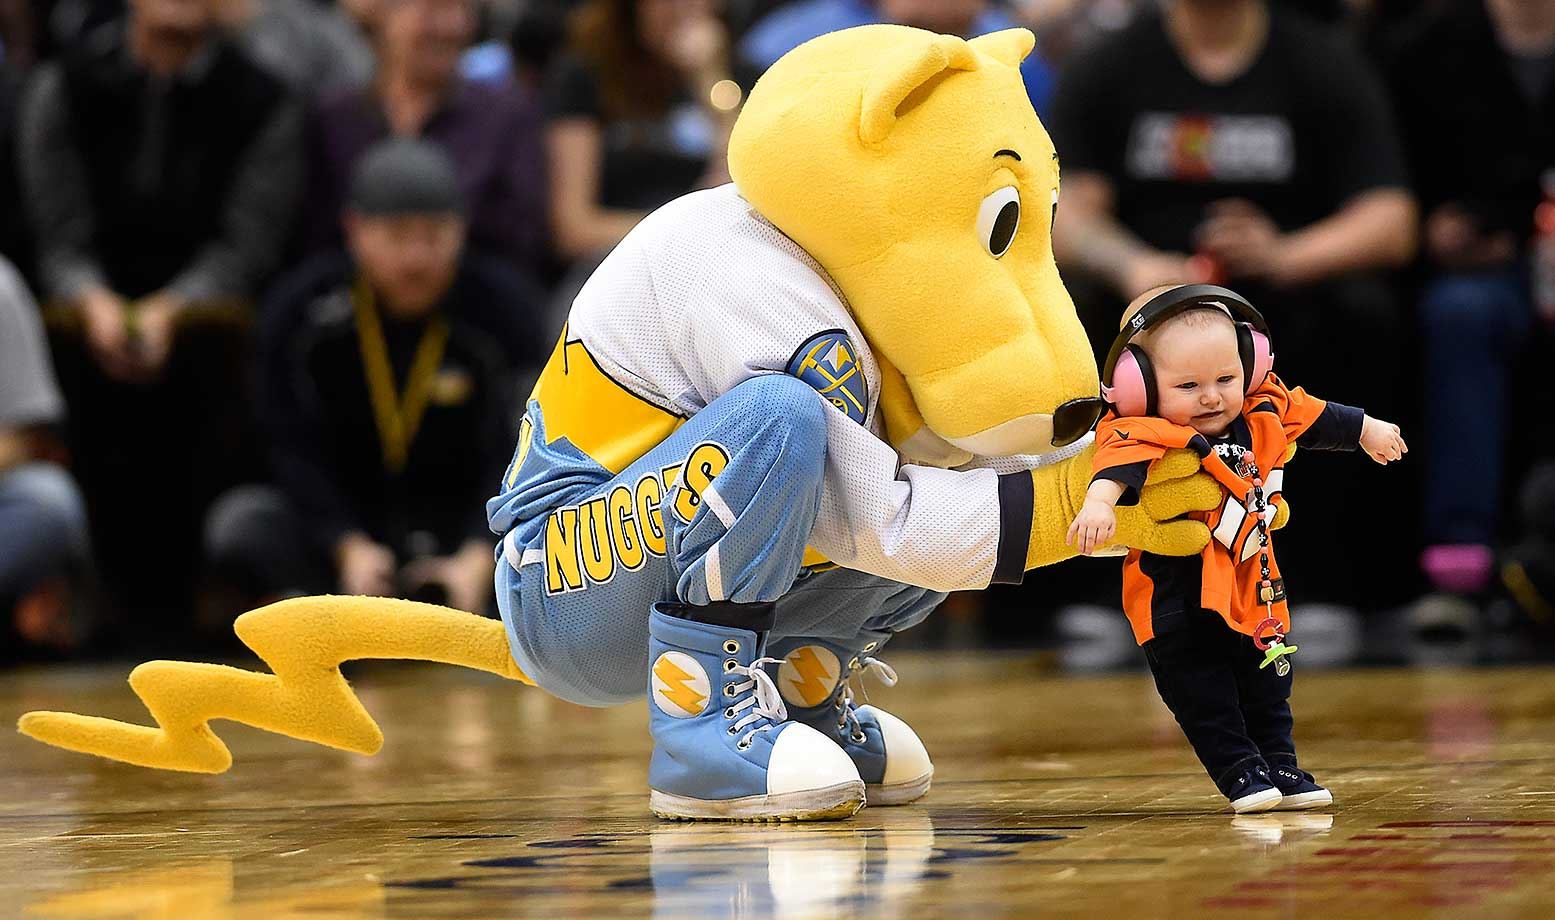 Denver Nuggets mascot Rocky dancing with a small child in a Broncos jersey during the Nuggets' 112-93 win over the Toronto Raptors at the Pepsi Center.